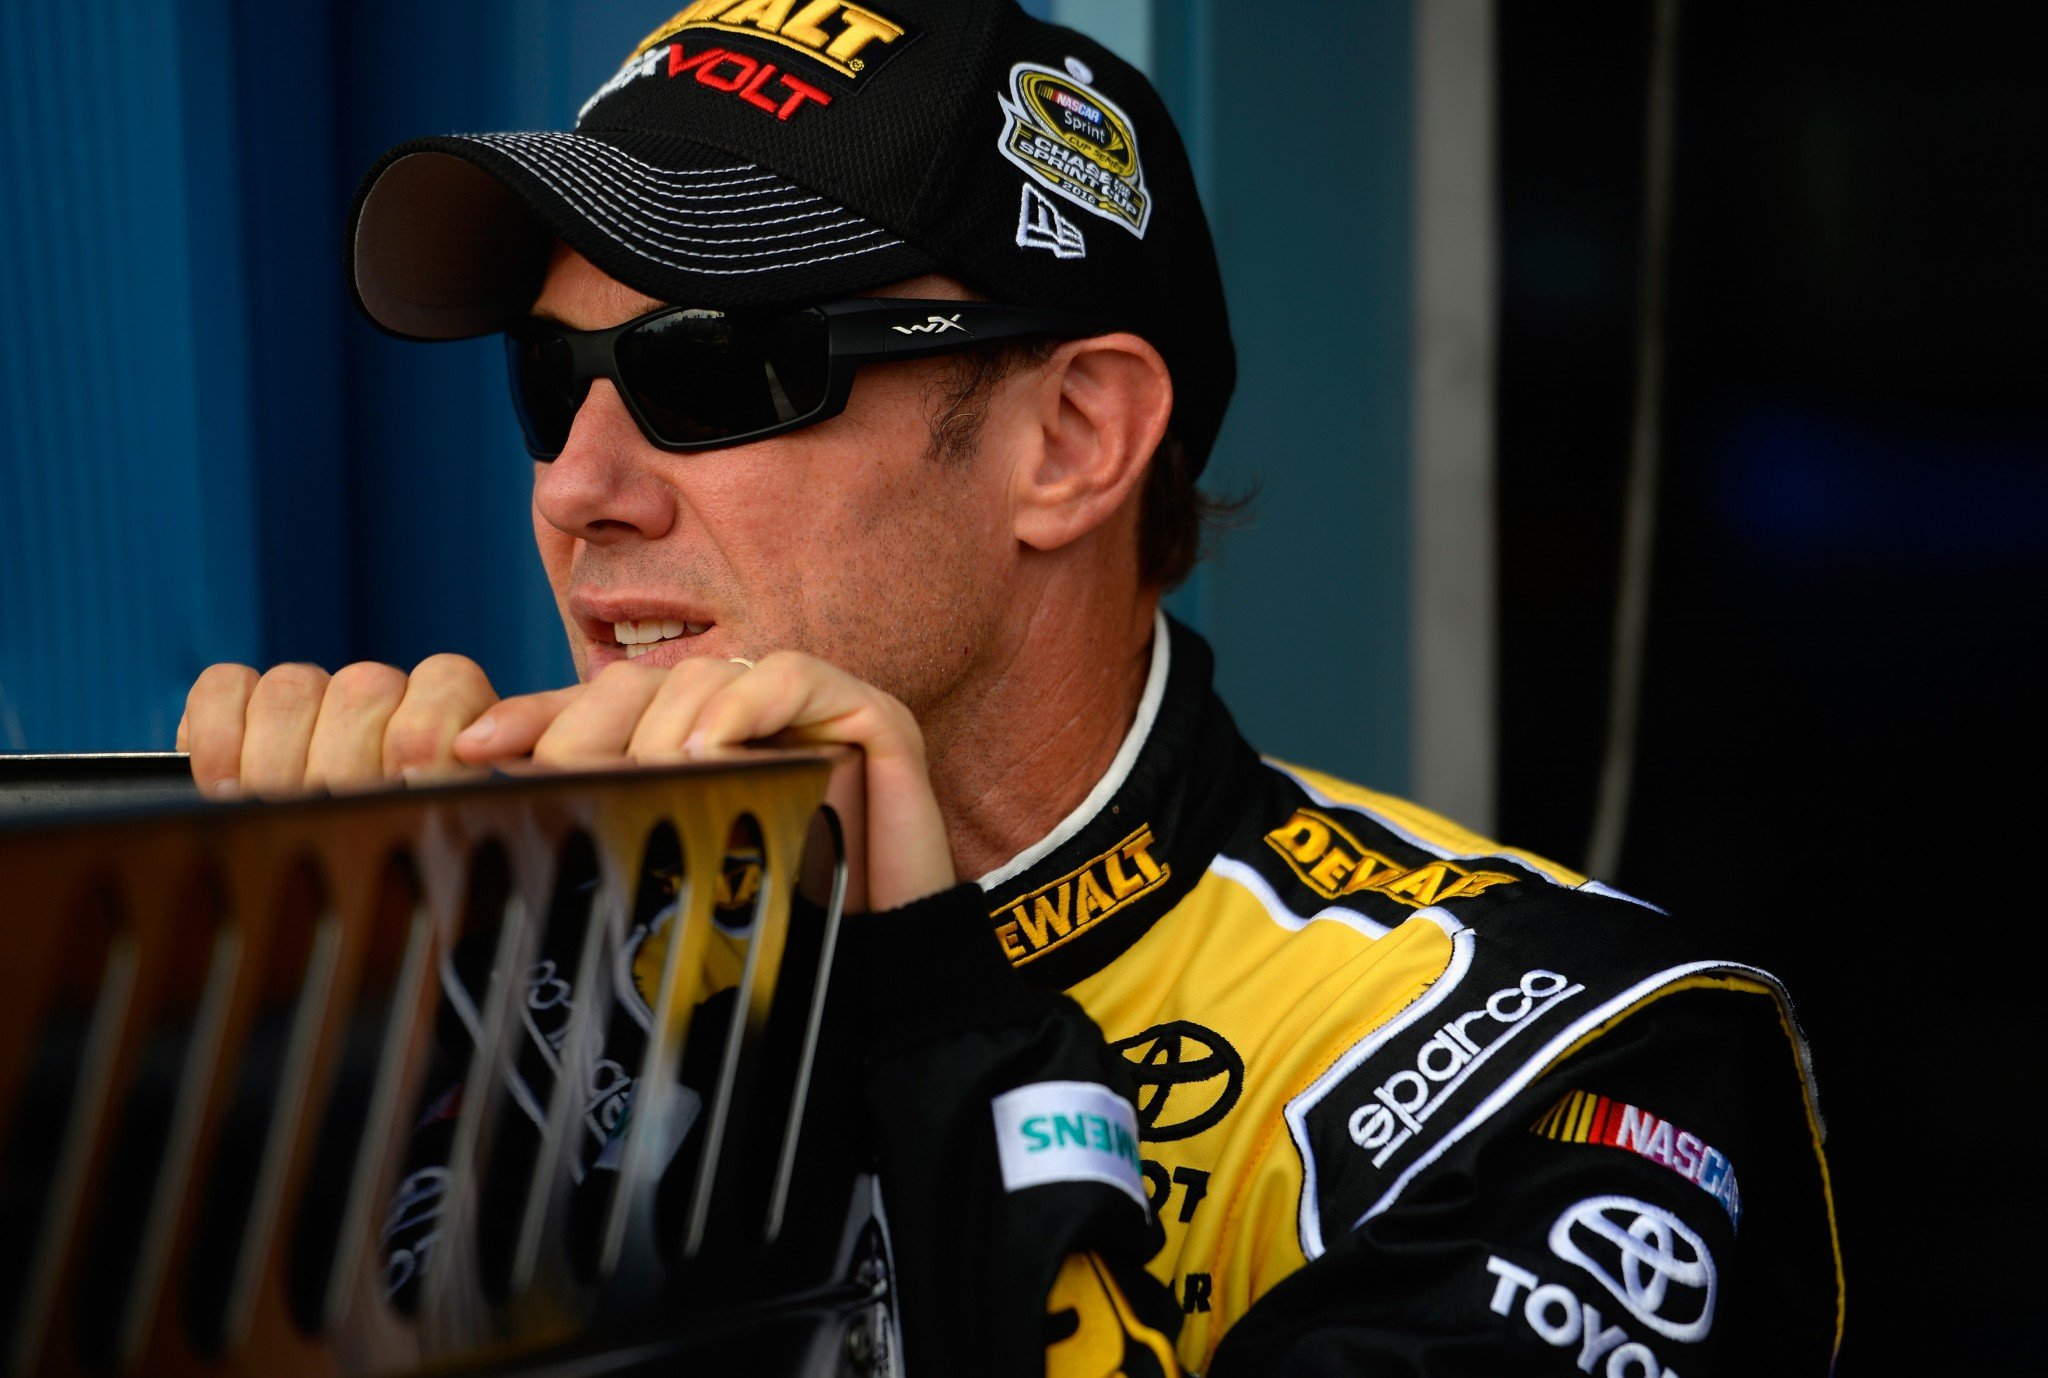 Matt Kenseth finished 9th at Chicago on Sunday (Getty).